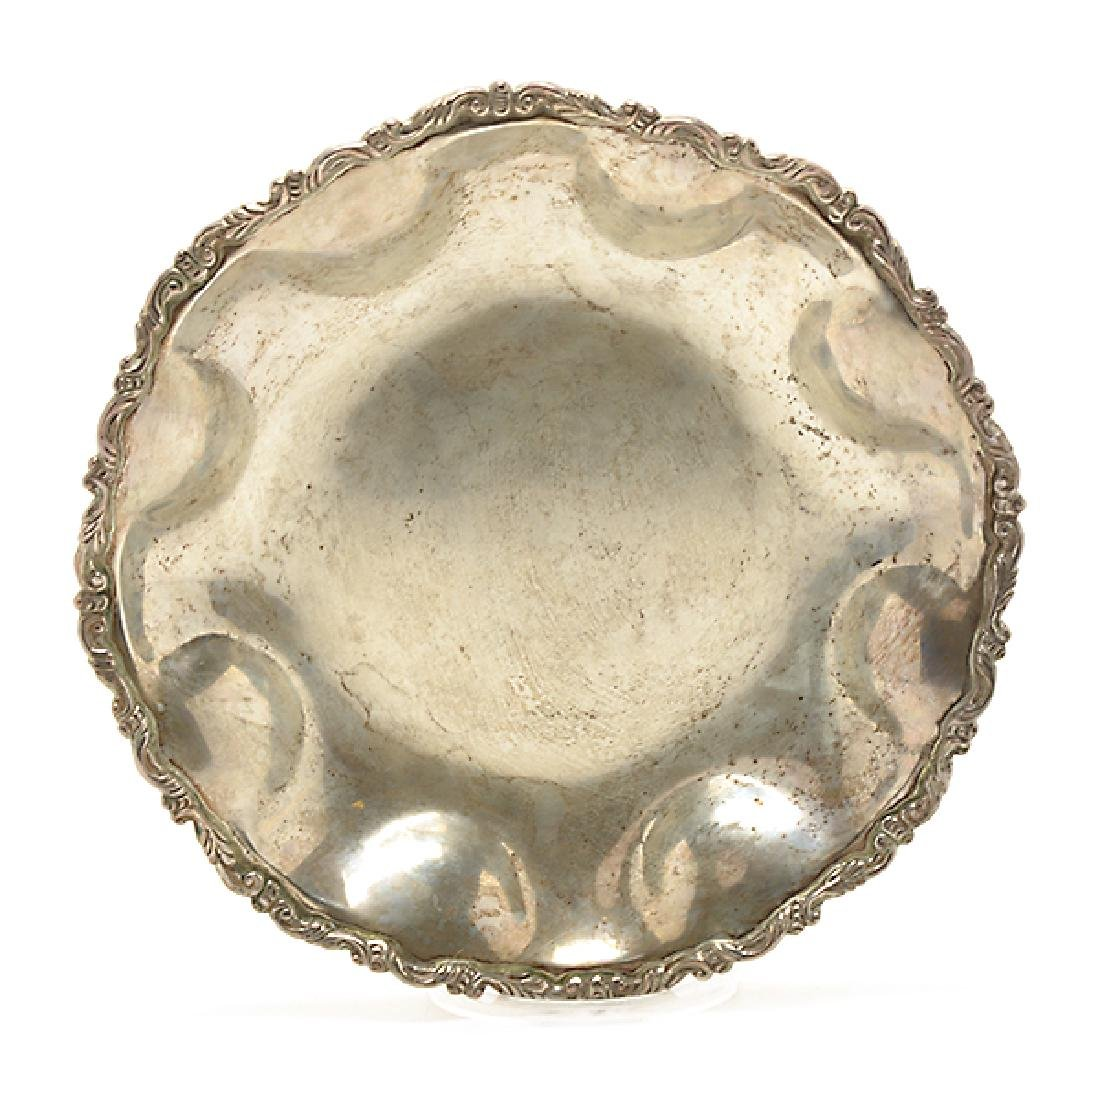 Collection of Mexican Sterling Silver Table Articles - 4